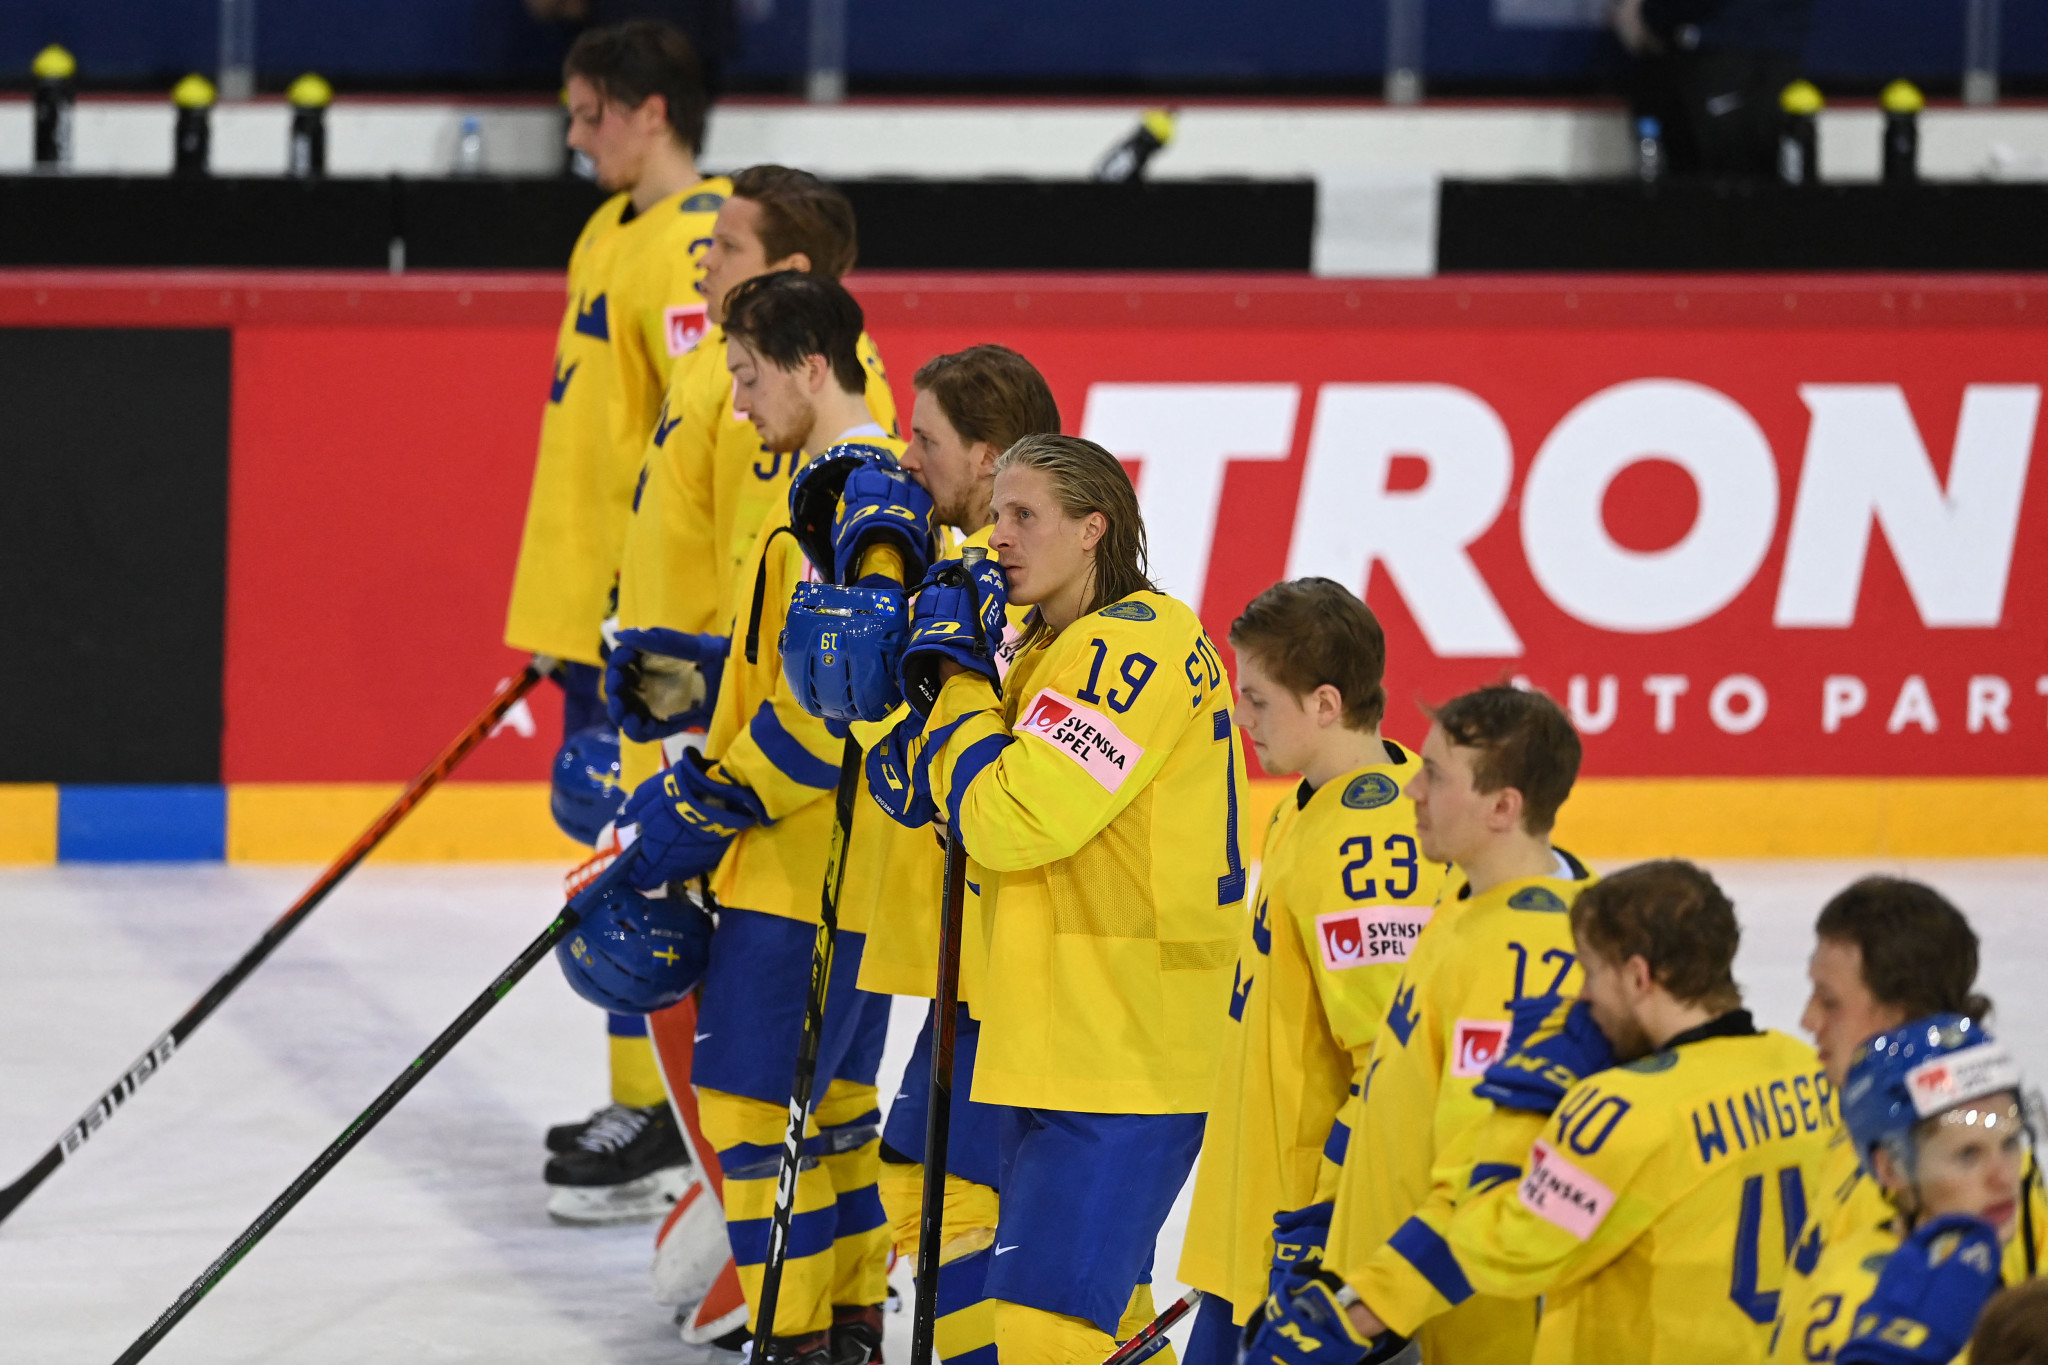 Sweden eliminated from IIHF World Championship after shoot-out loss to ROC